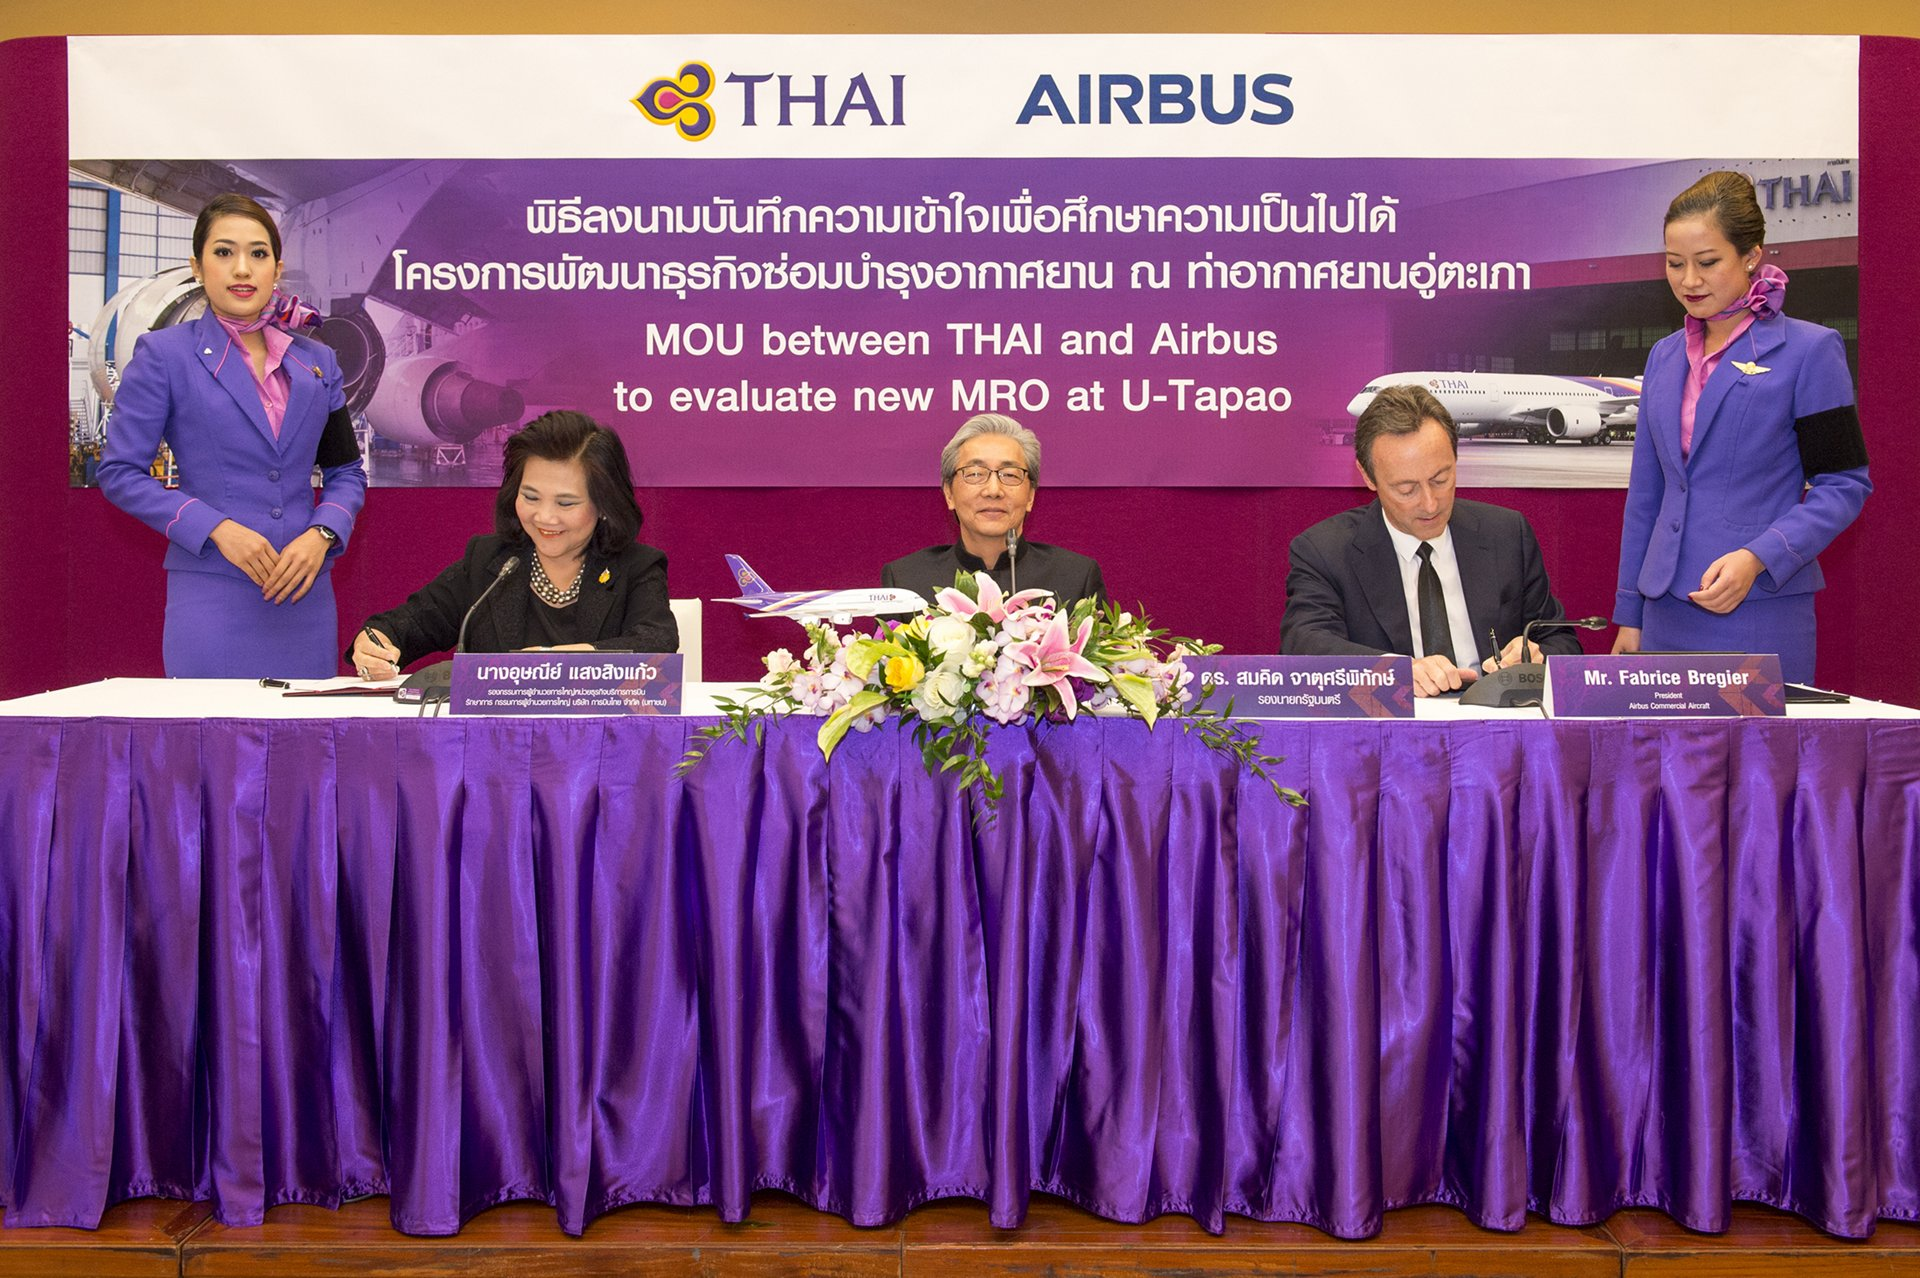 Airbus signs MOU with THAI to develop new MRO business 1